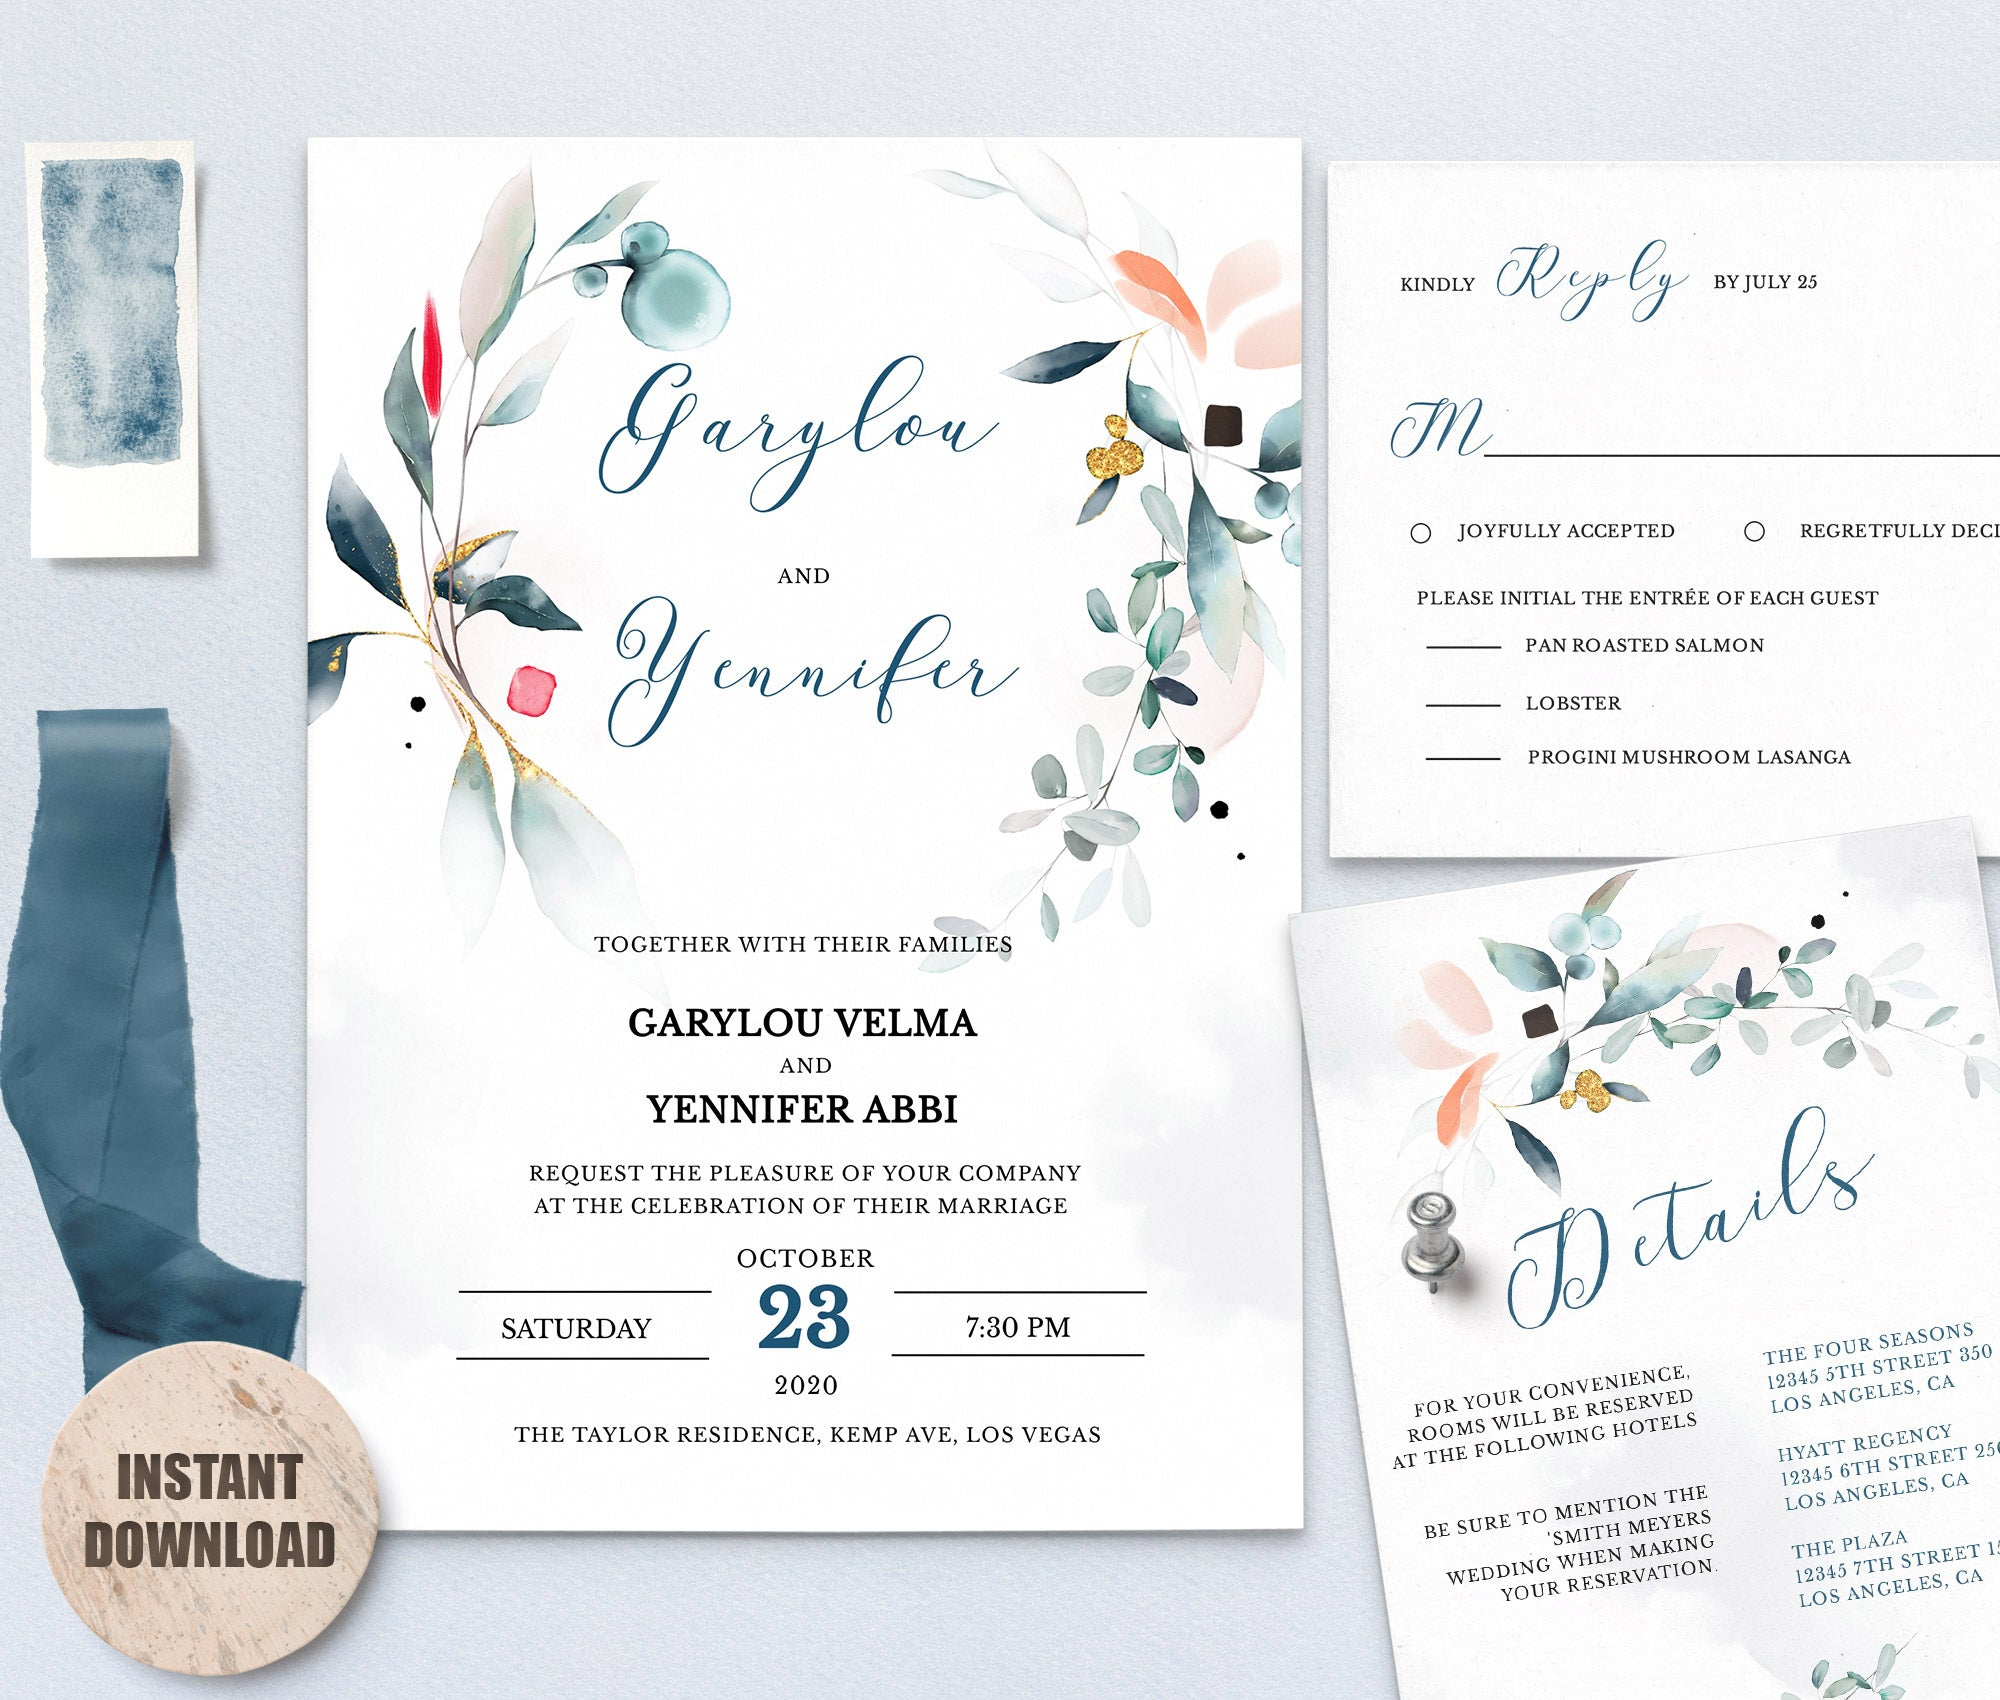 SPMR - Wedding Template Bundles set 7 - Greenlanderdesign